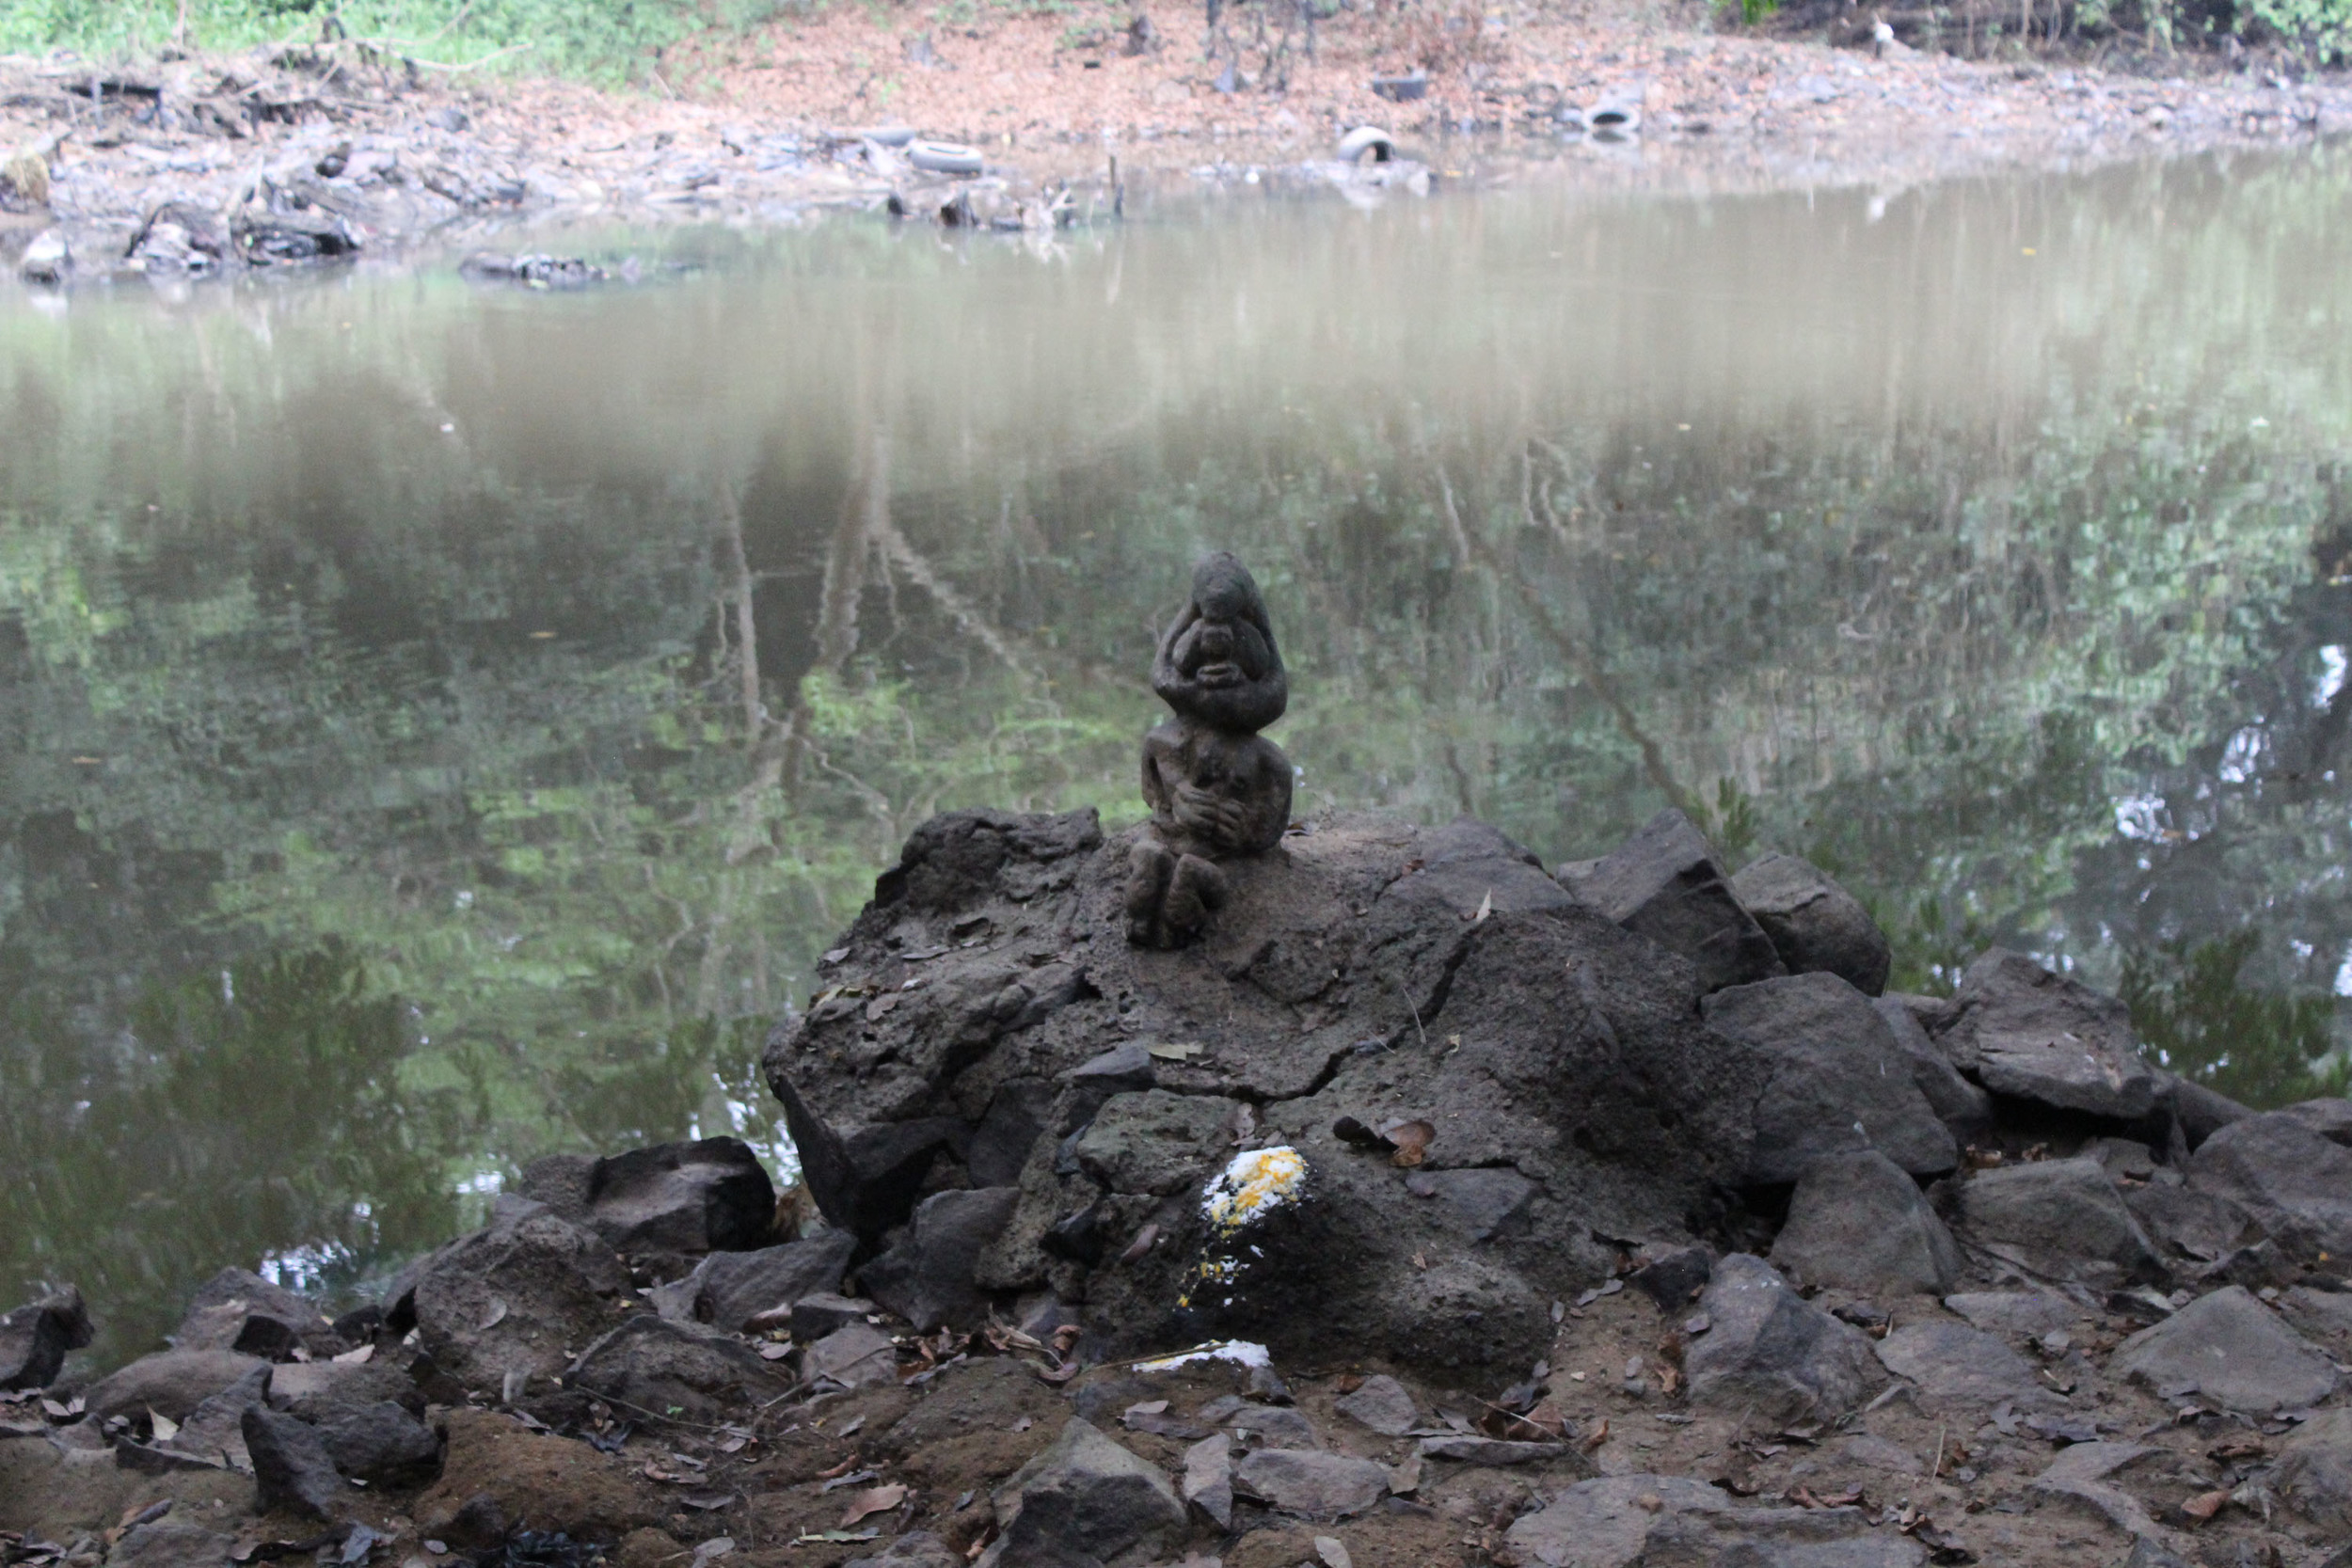 Oshun's Eshu with some offerings sitting next to the central statue at the Oshun river, dry season, 2015.